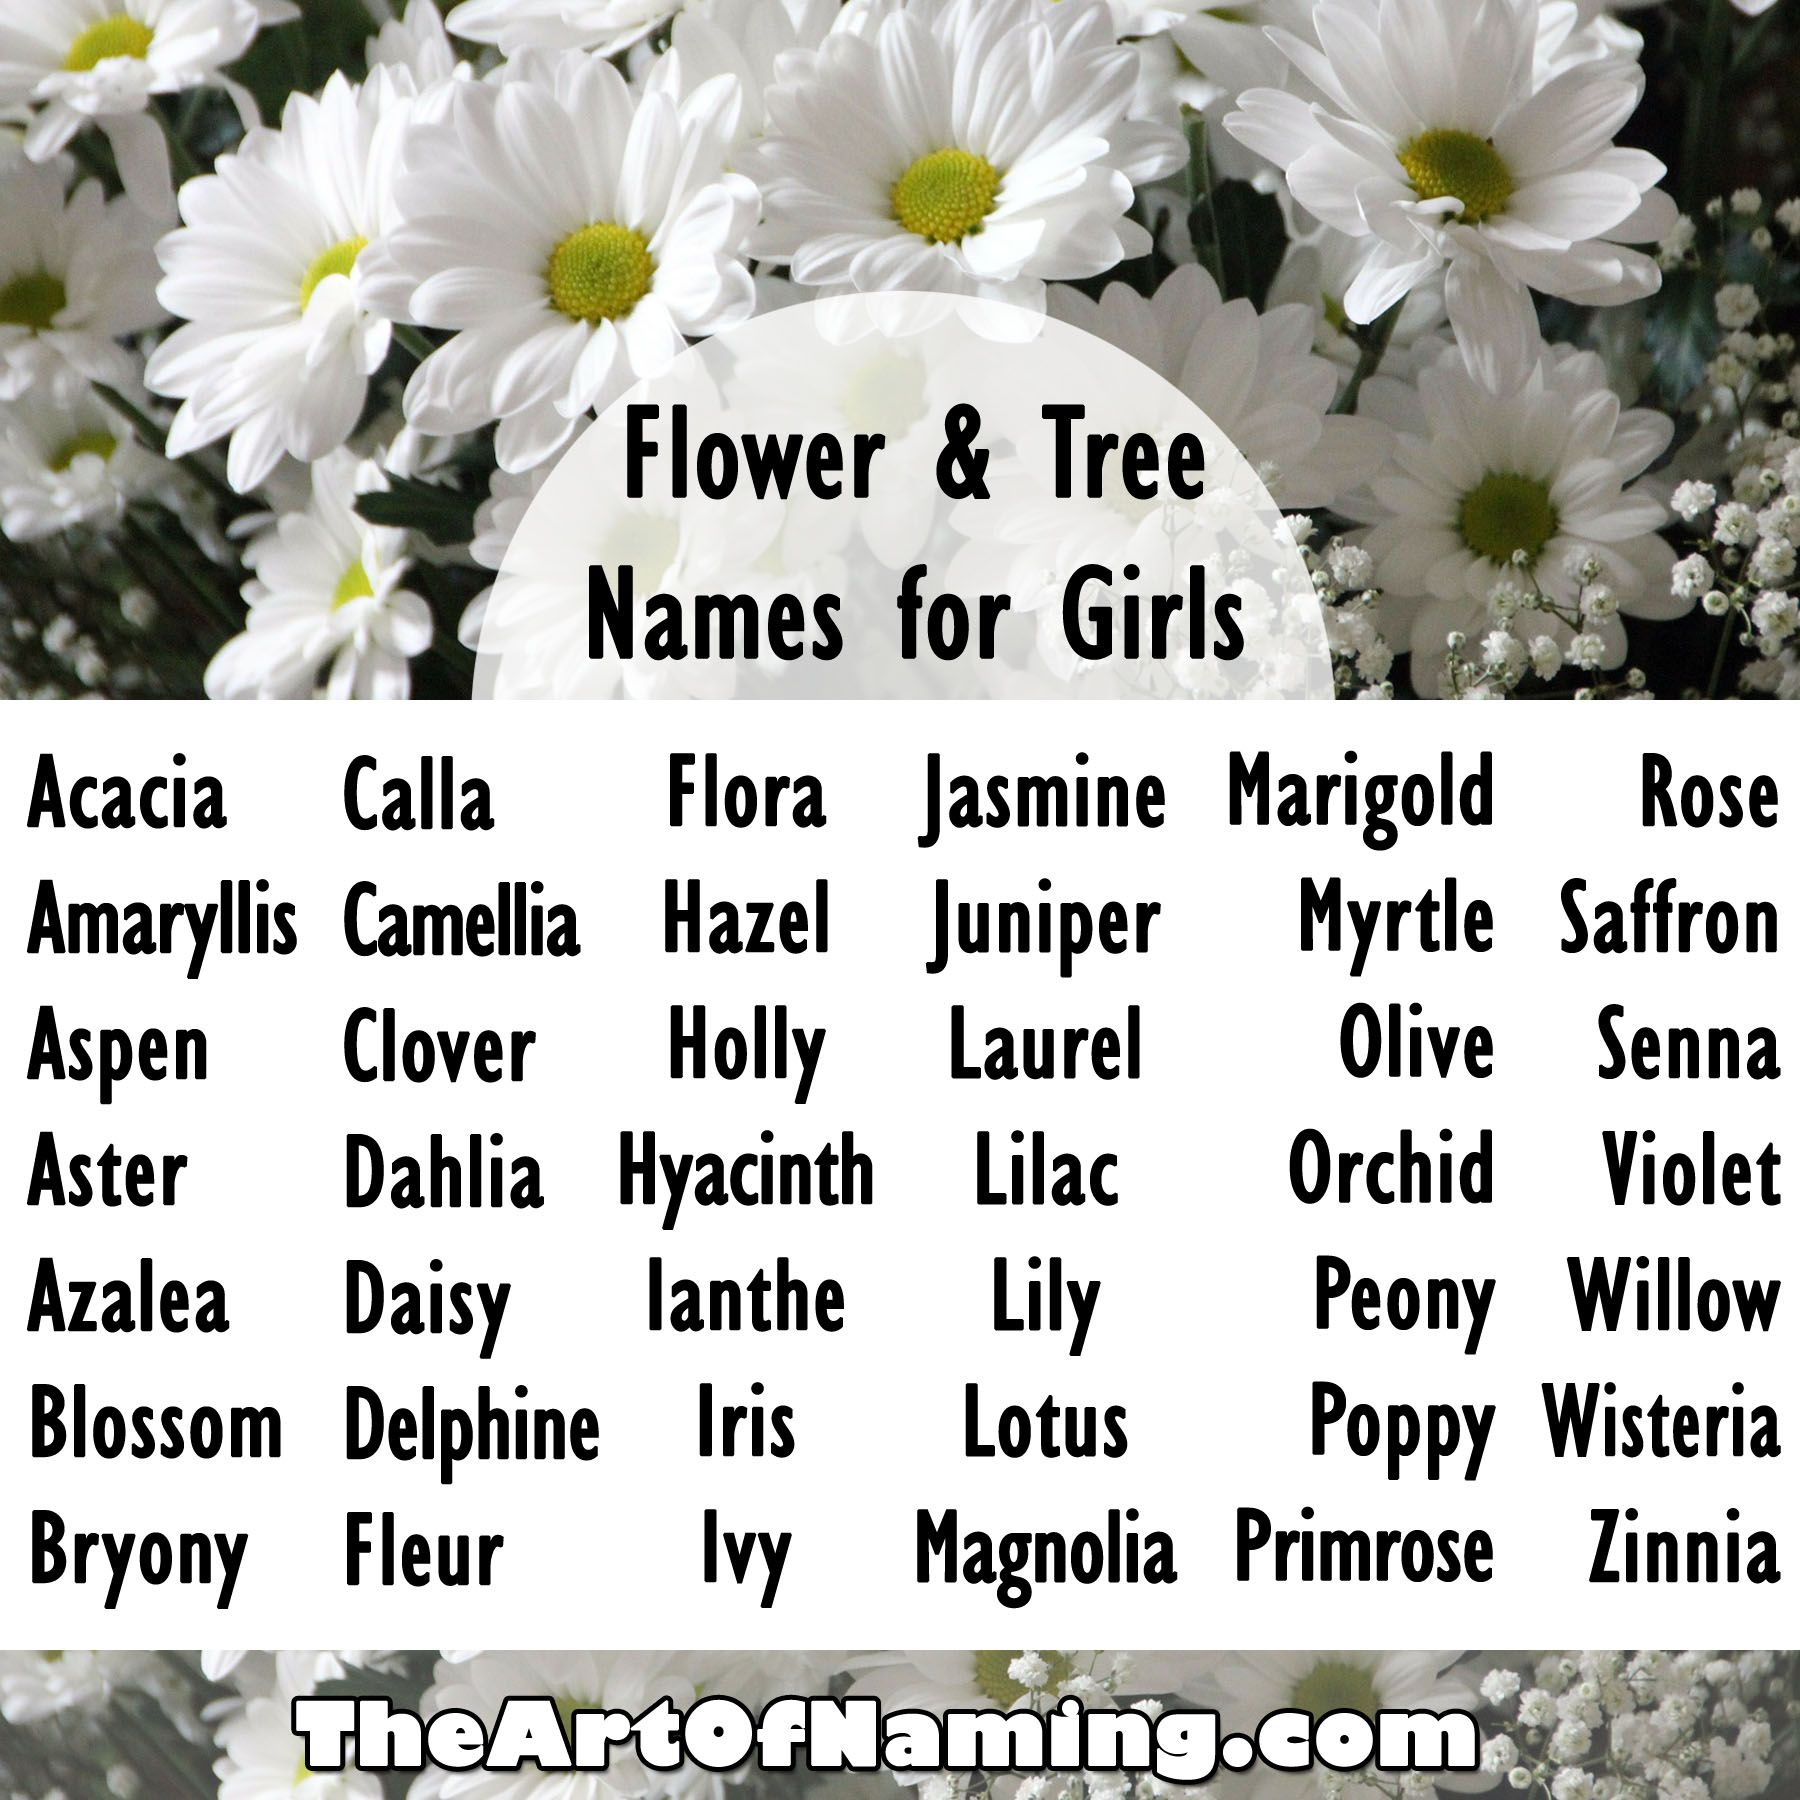 What are your favorite flower or tree names for girls?